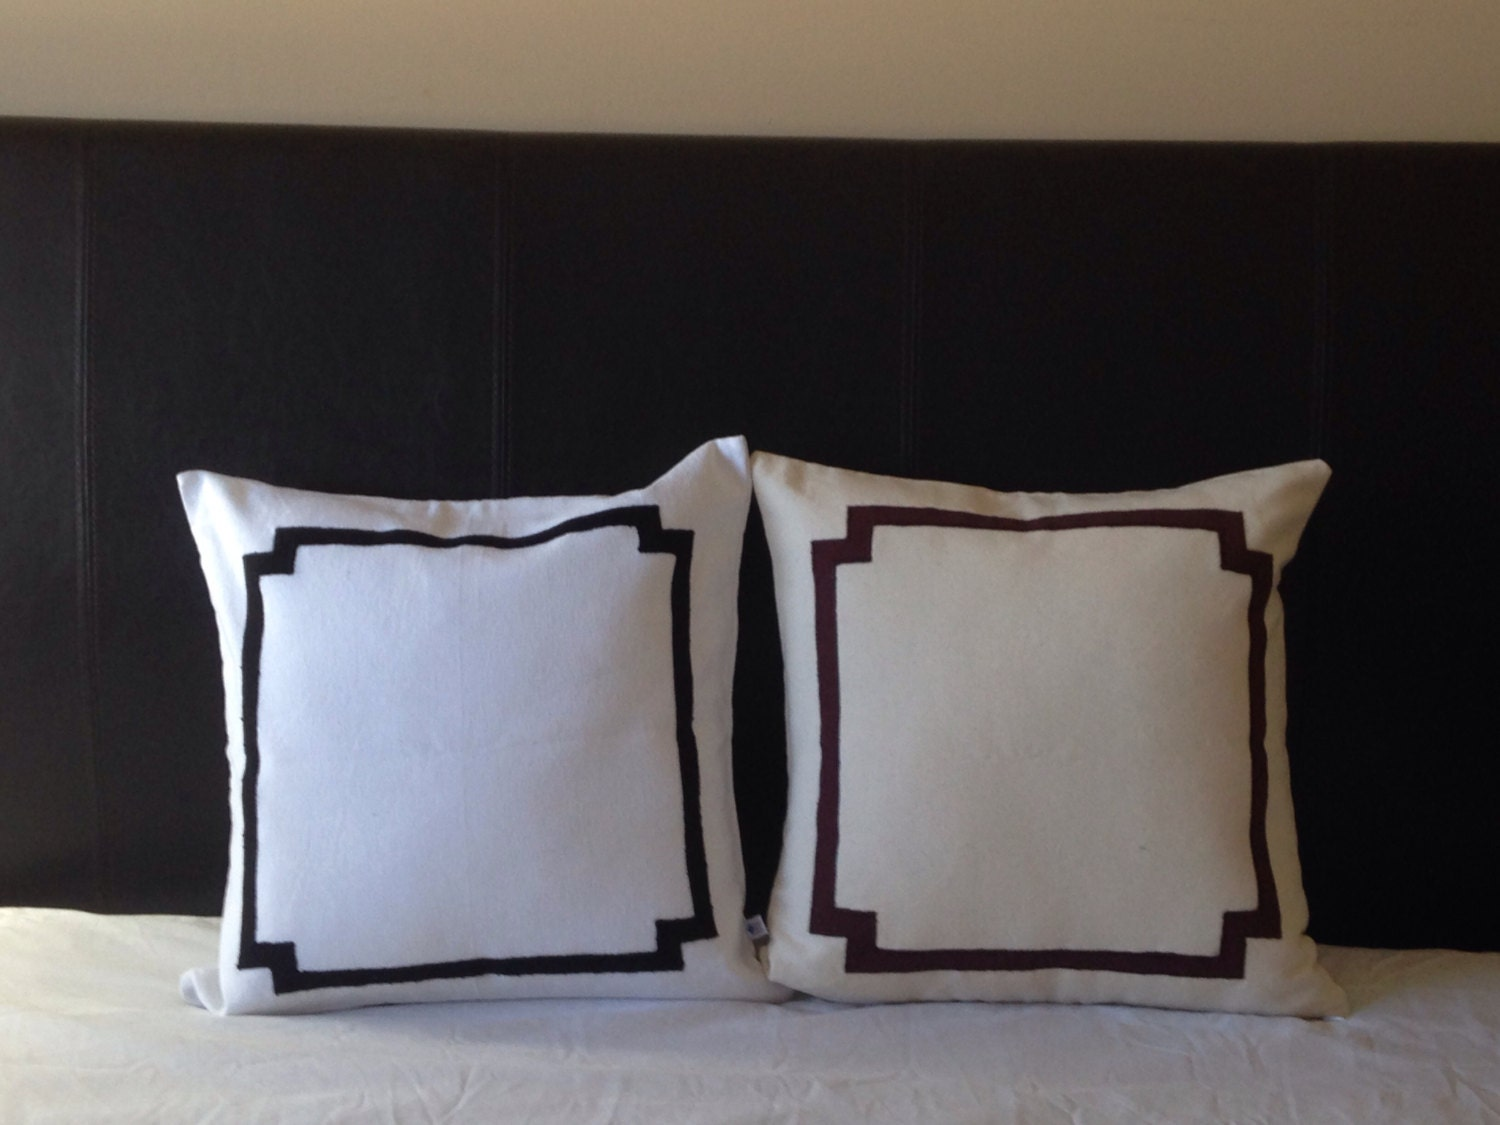 Decorative Pillow Trim : Border Pillows Pillows with trims Custom Border Pillows